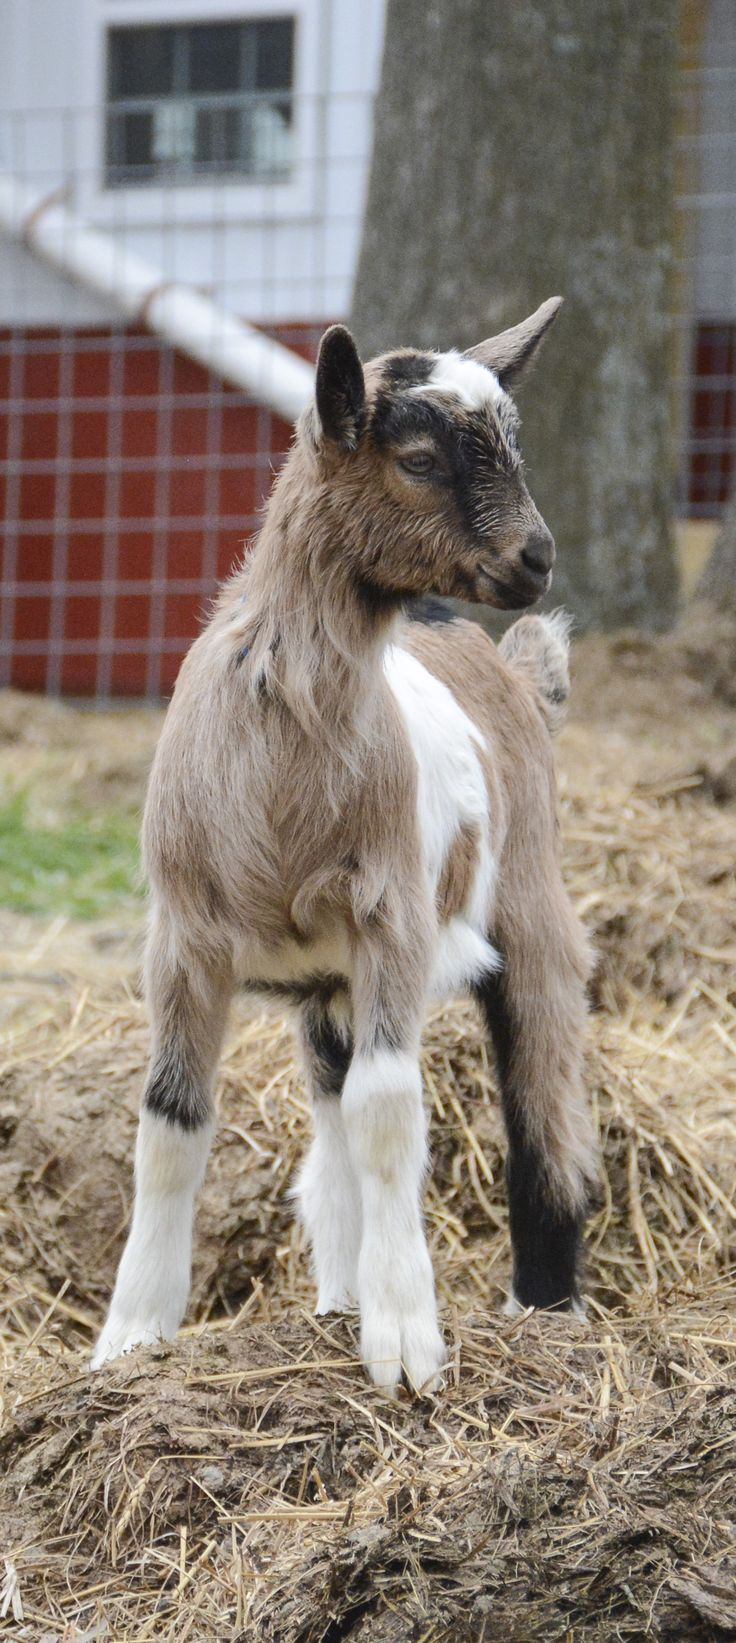 54 best images about Baby Goats 2016 on Pinterest | Baby ...